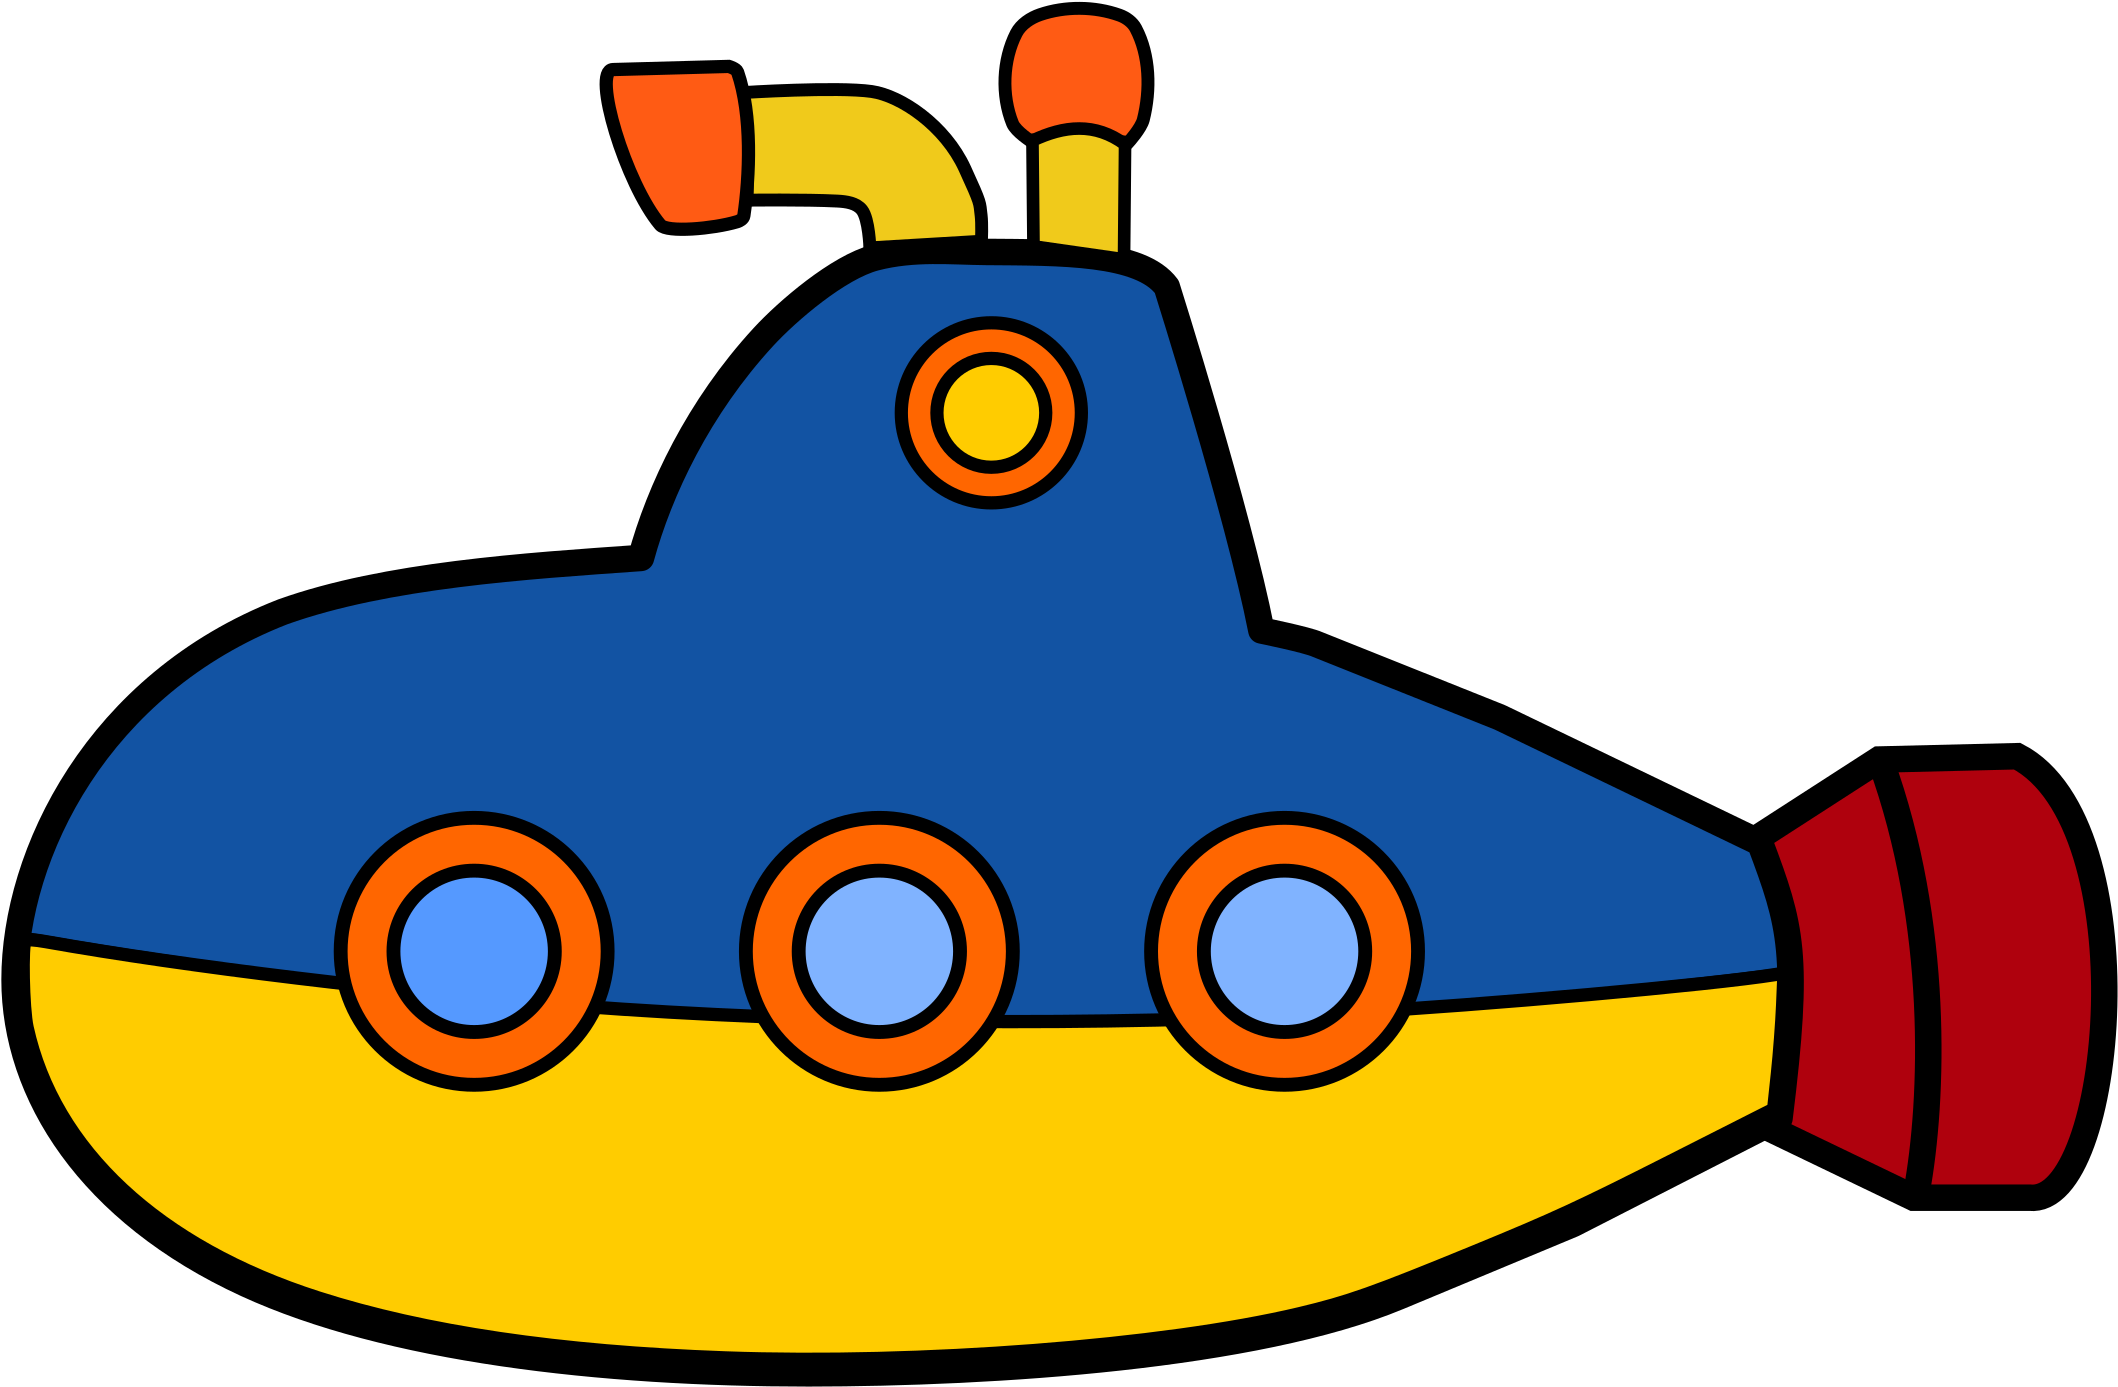 Png full . Submarine clipart transparent background